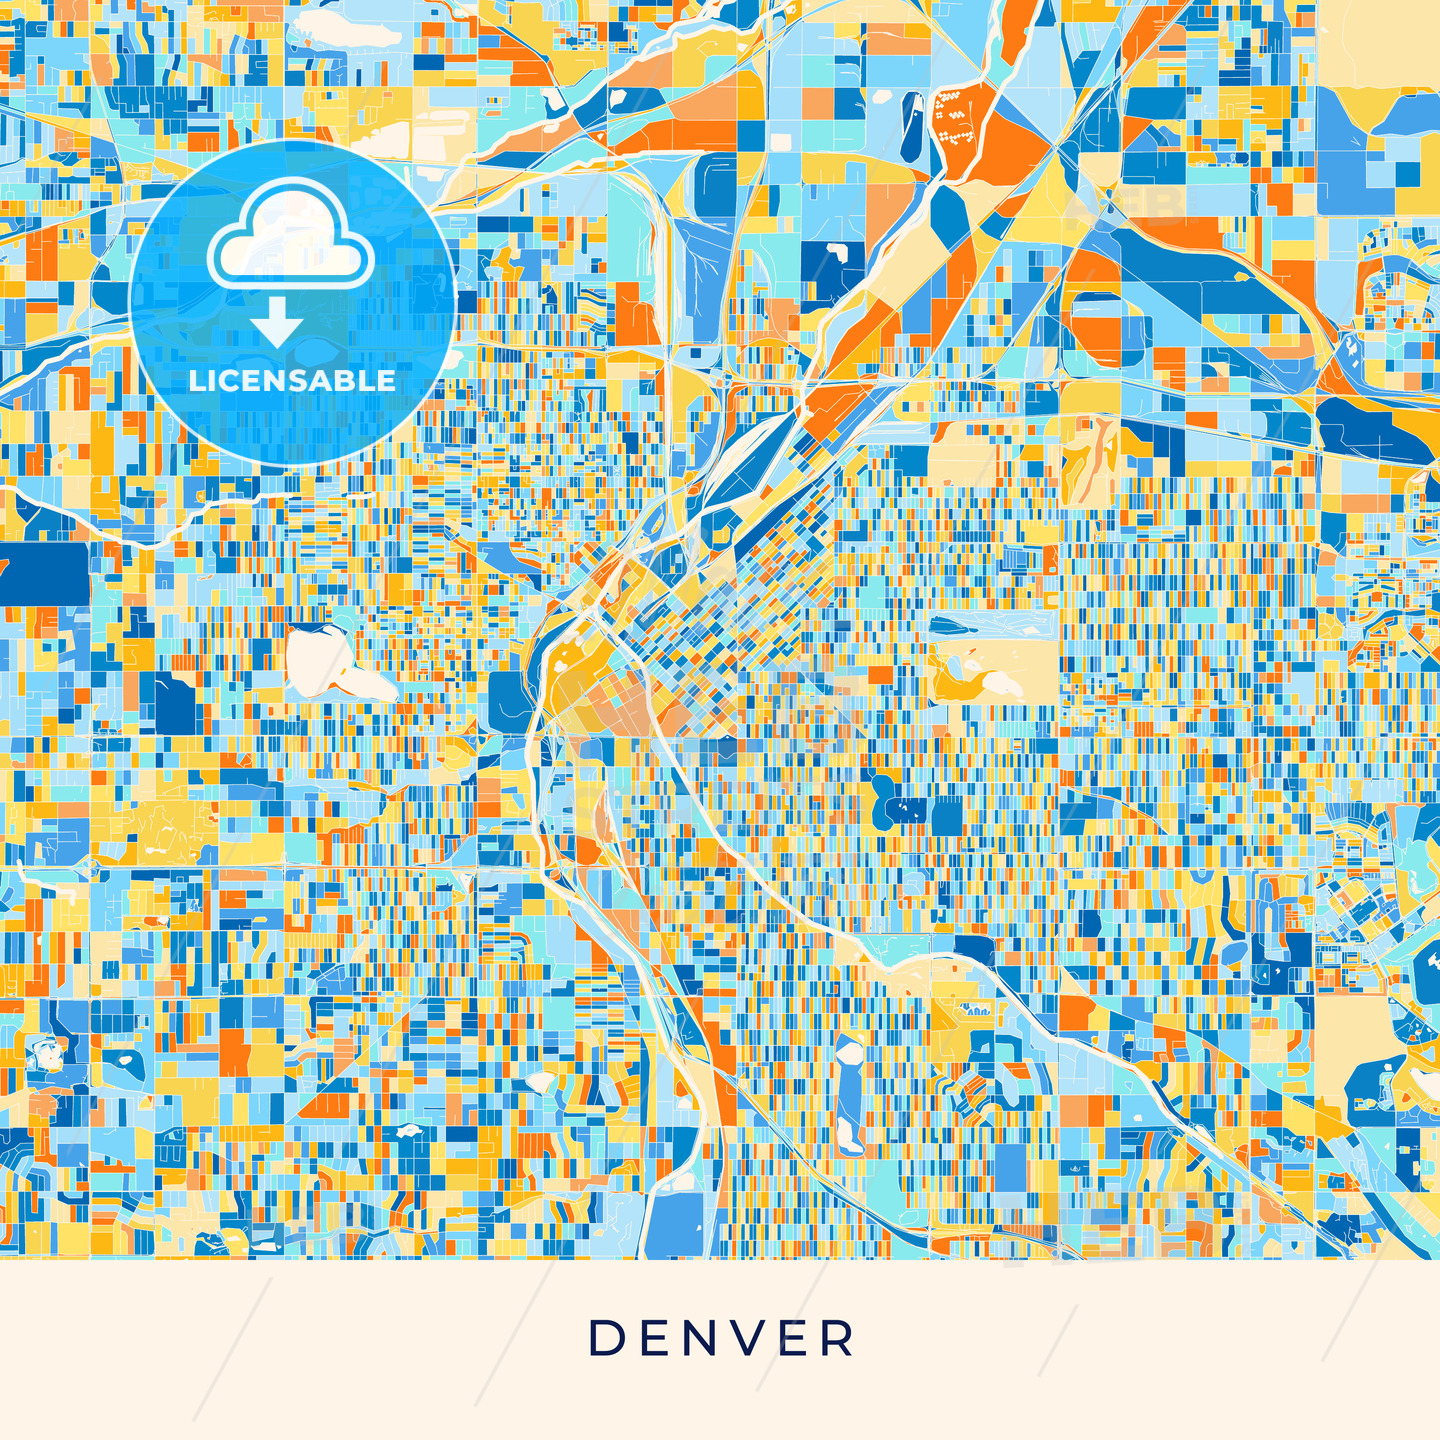 Denver colorful map poster template | HEBSTREITS